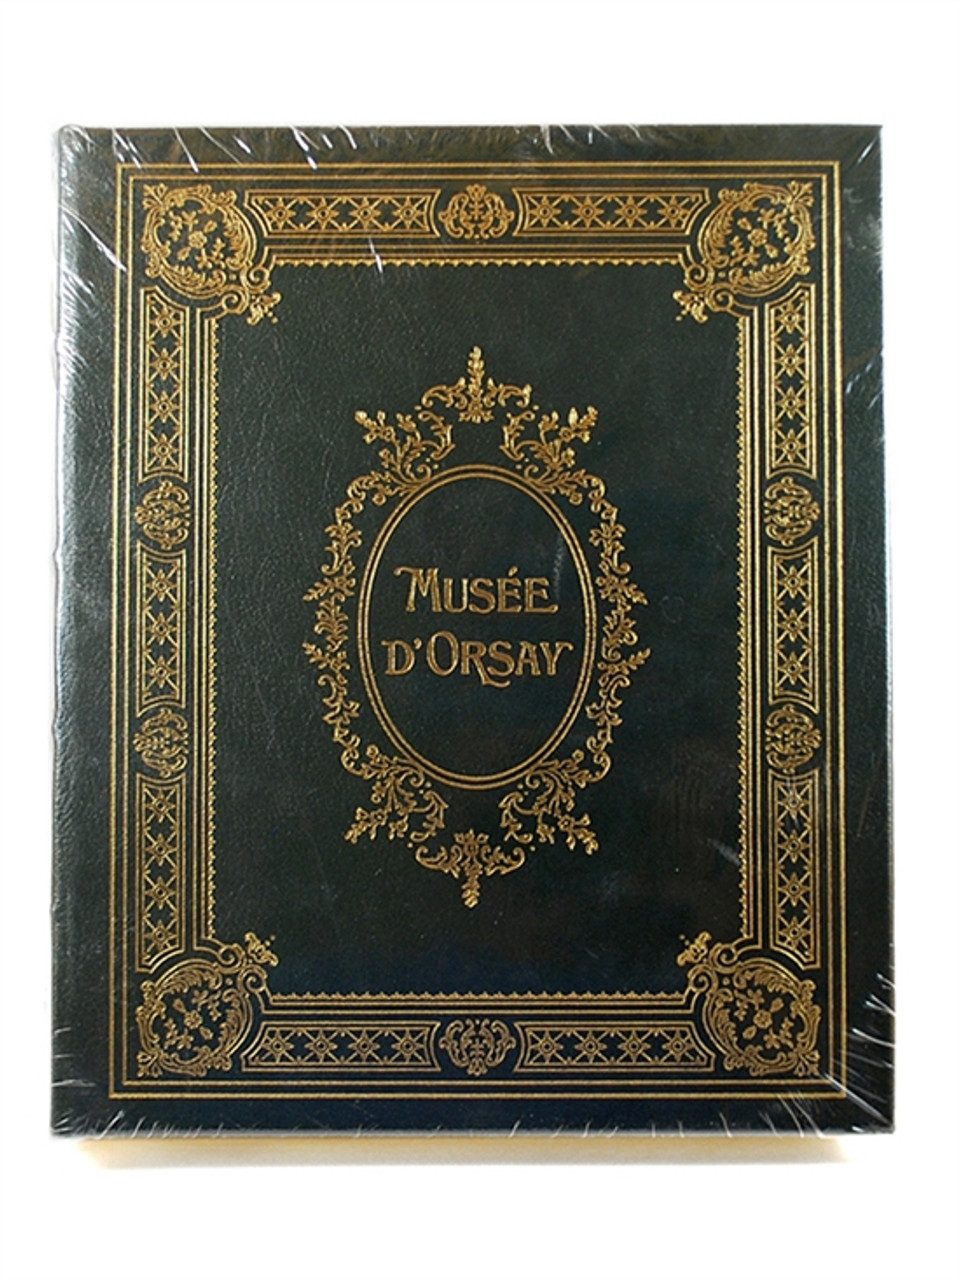 Easton Press - Paintings in the Musee D'Orsay Leather Bound Book